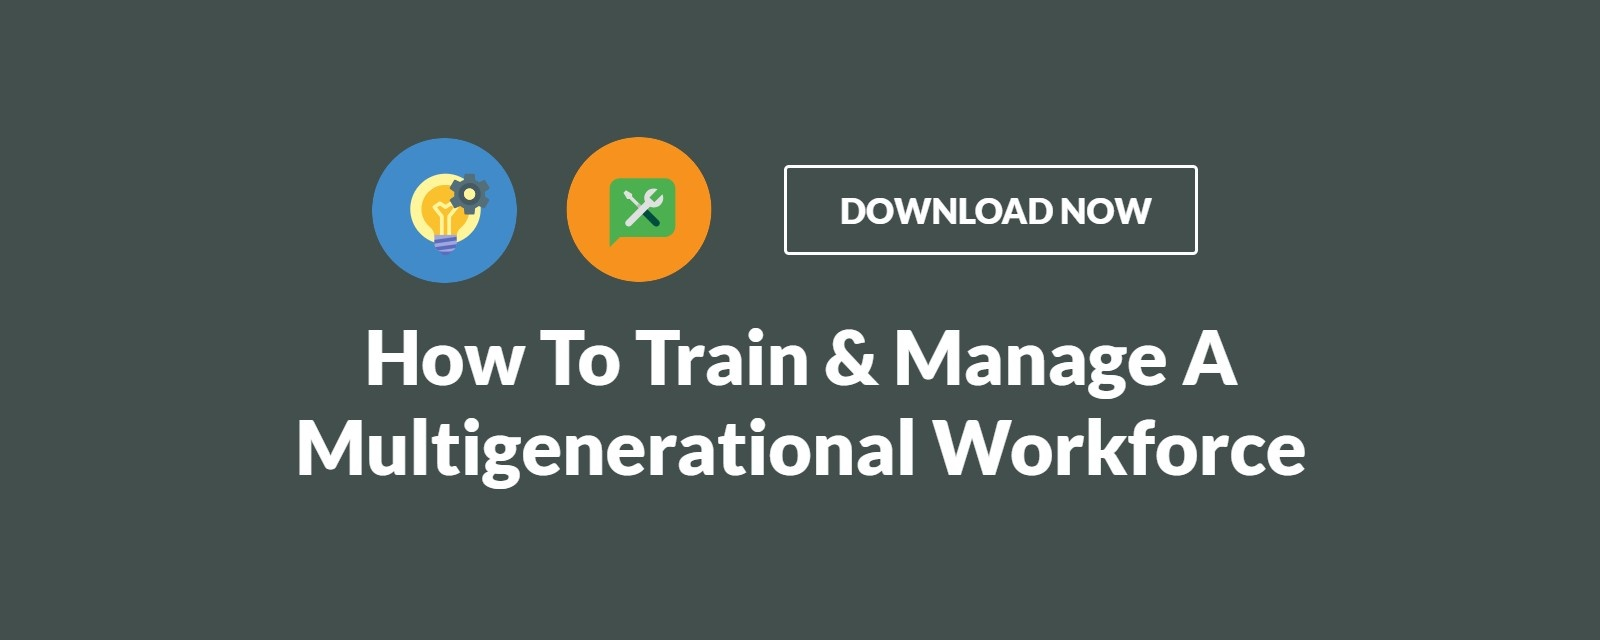 how to train and manage a multigenerational workforce